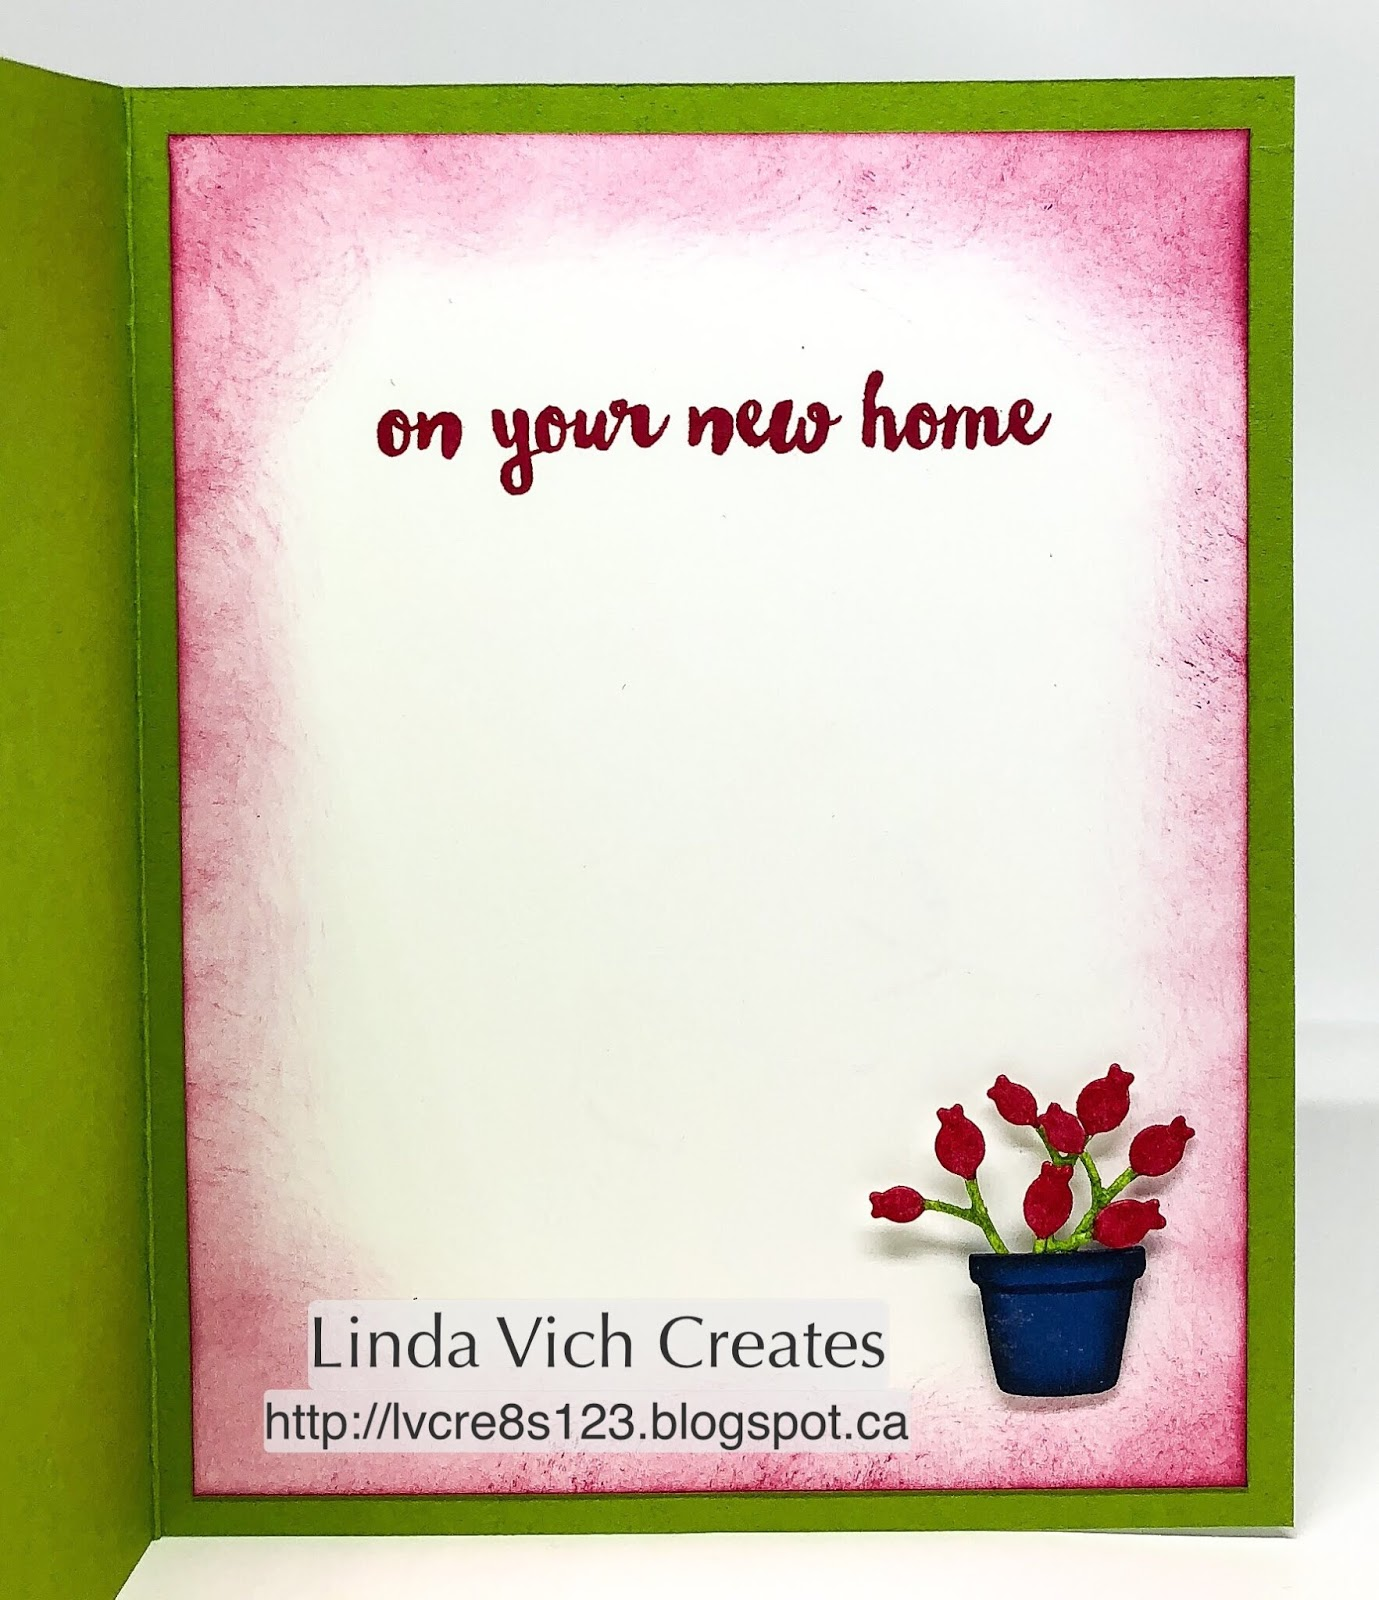 Linda Vich Creates Home Life For A New Home